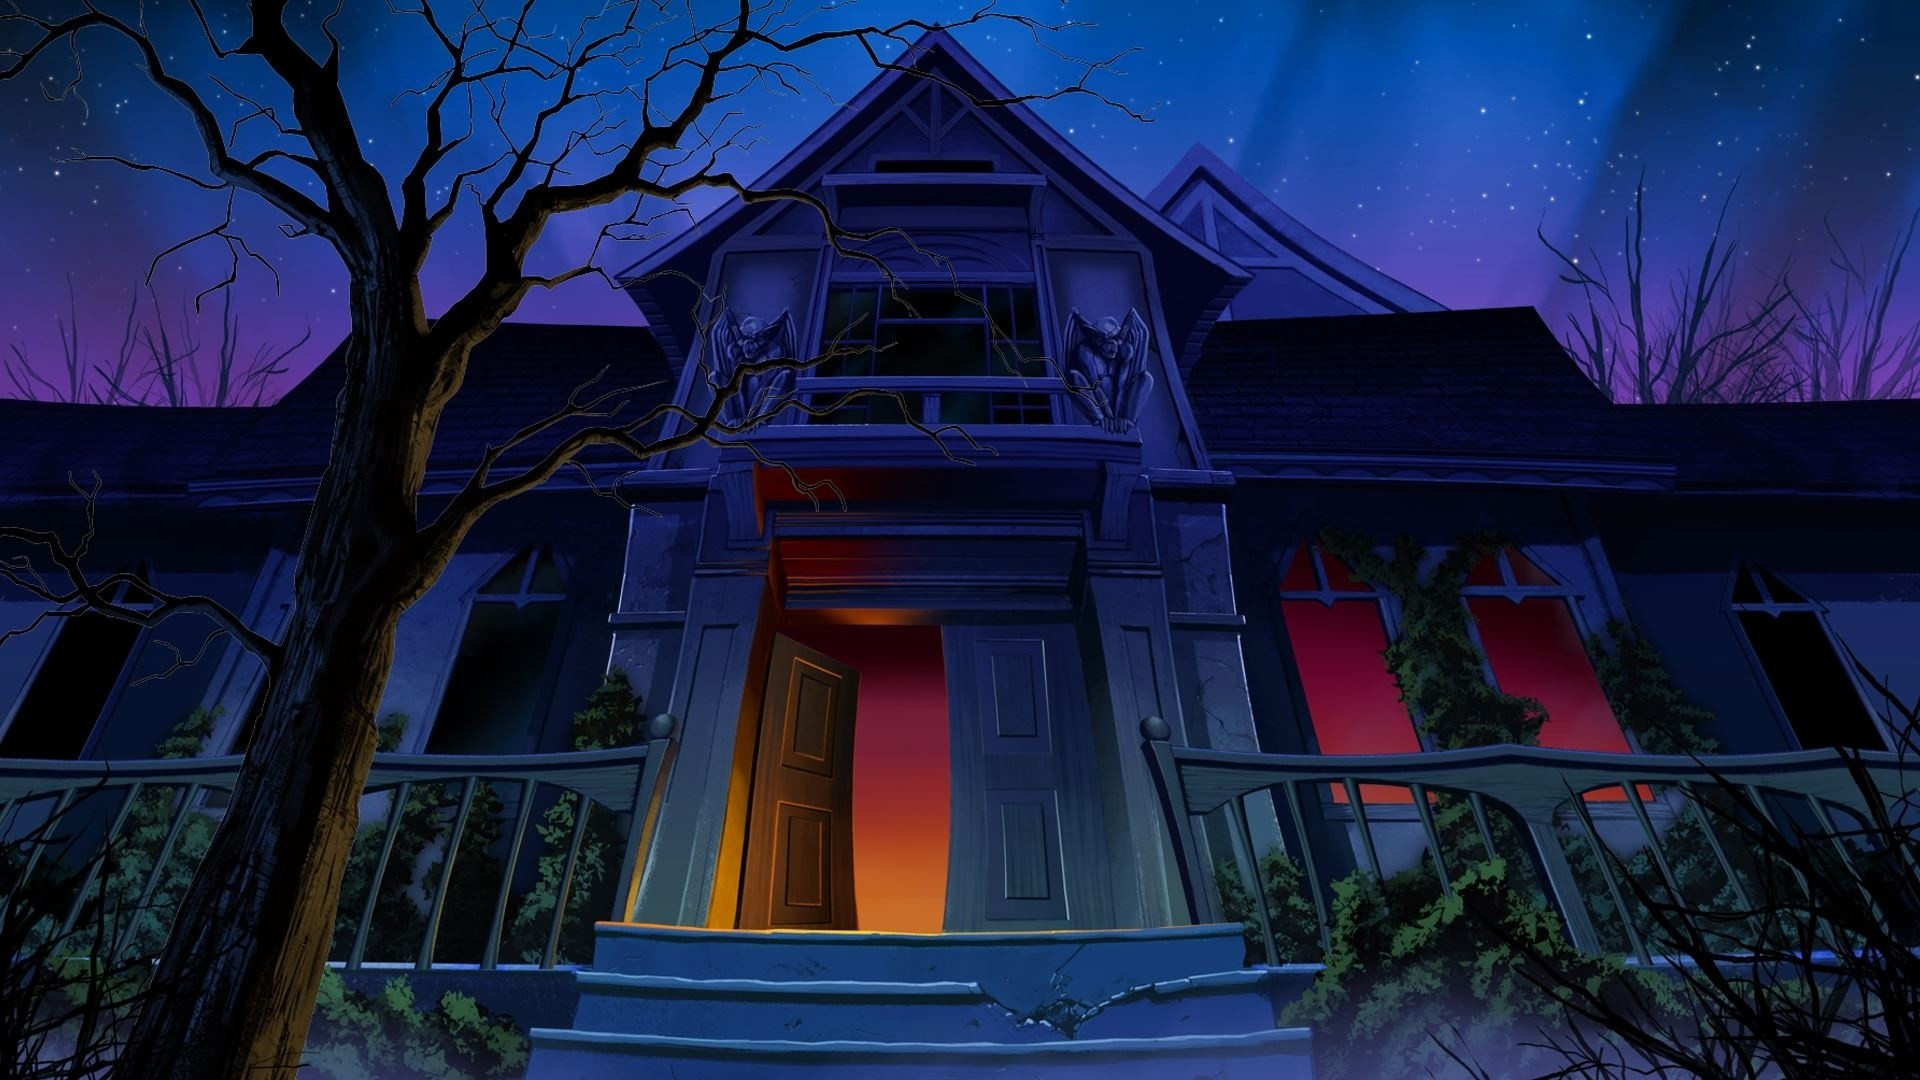 1920x1080 Night Haunted House Wllpper Download Free 1080p